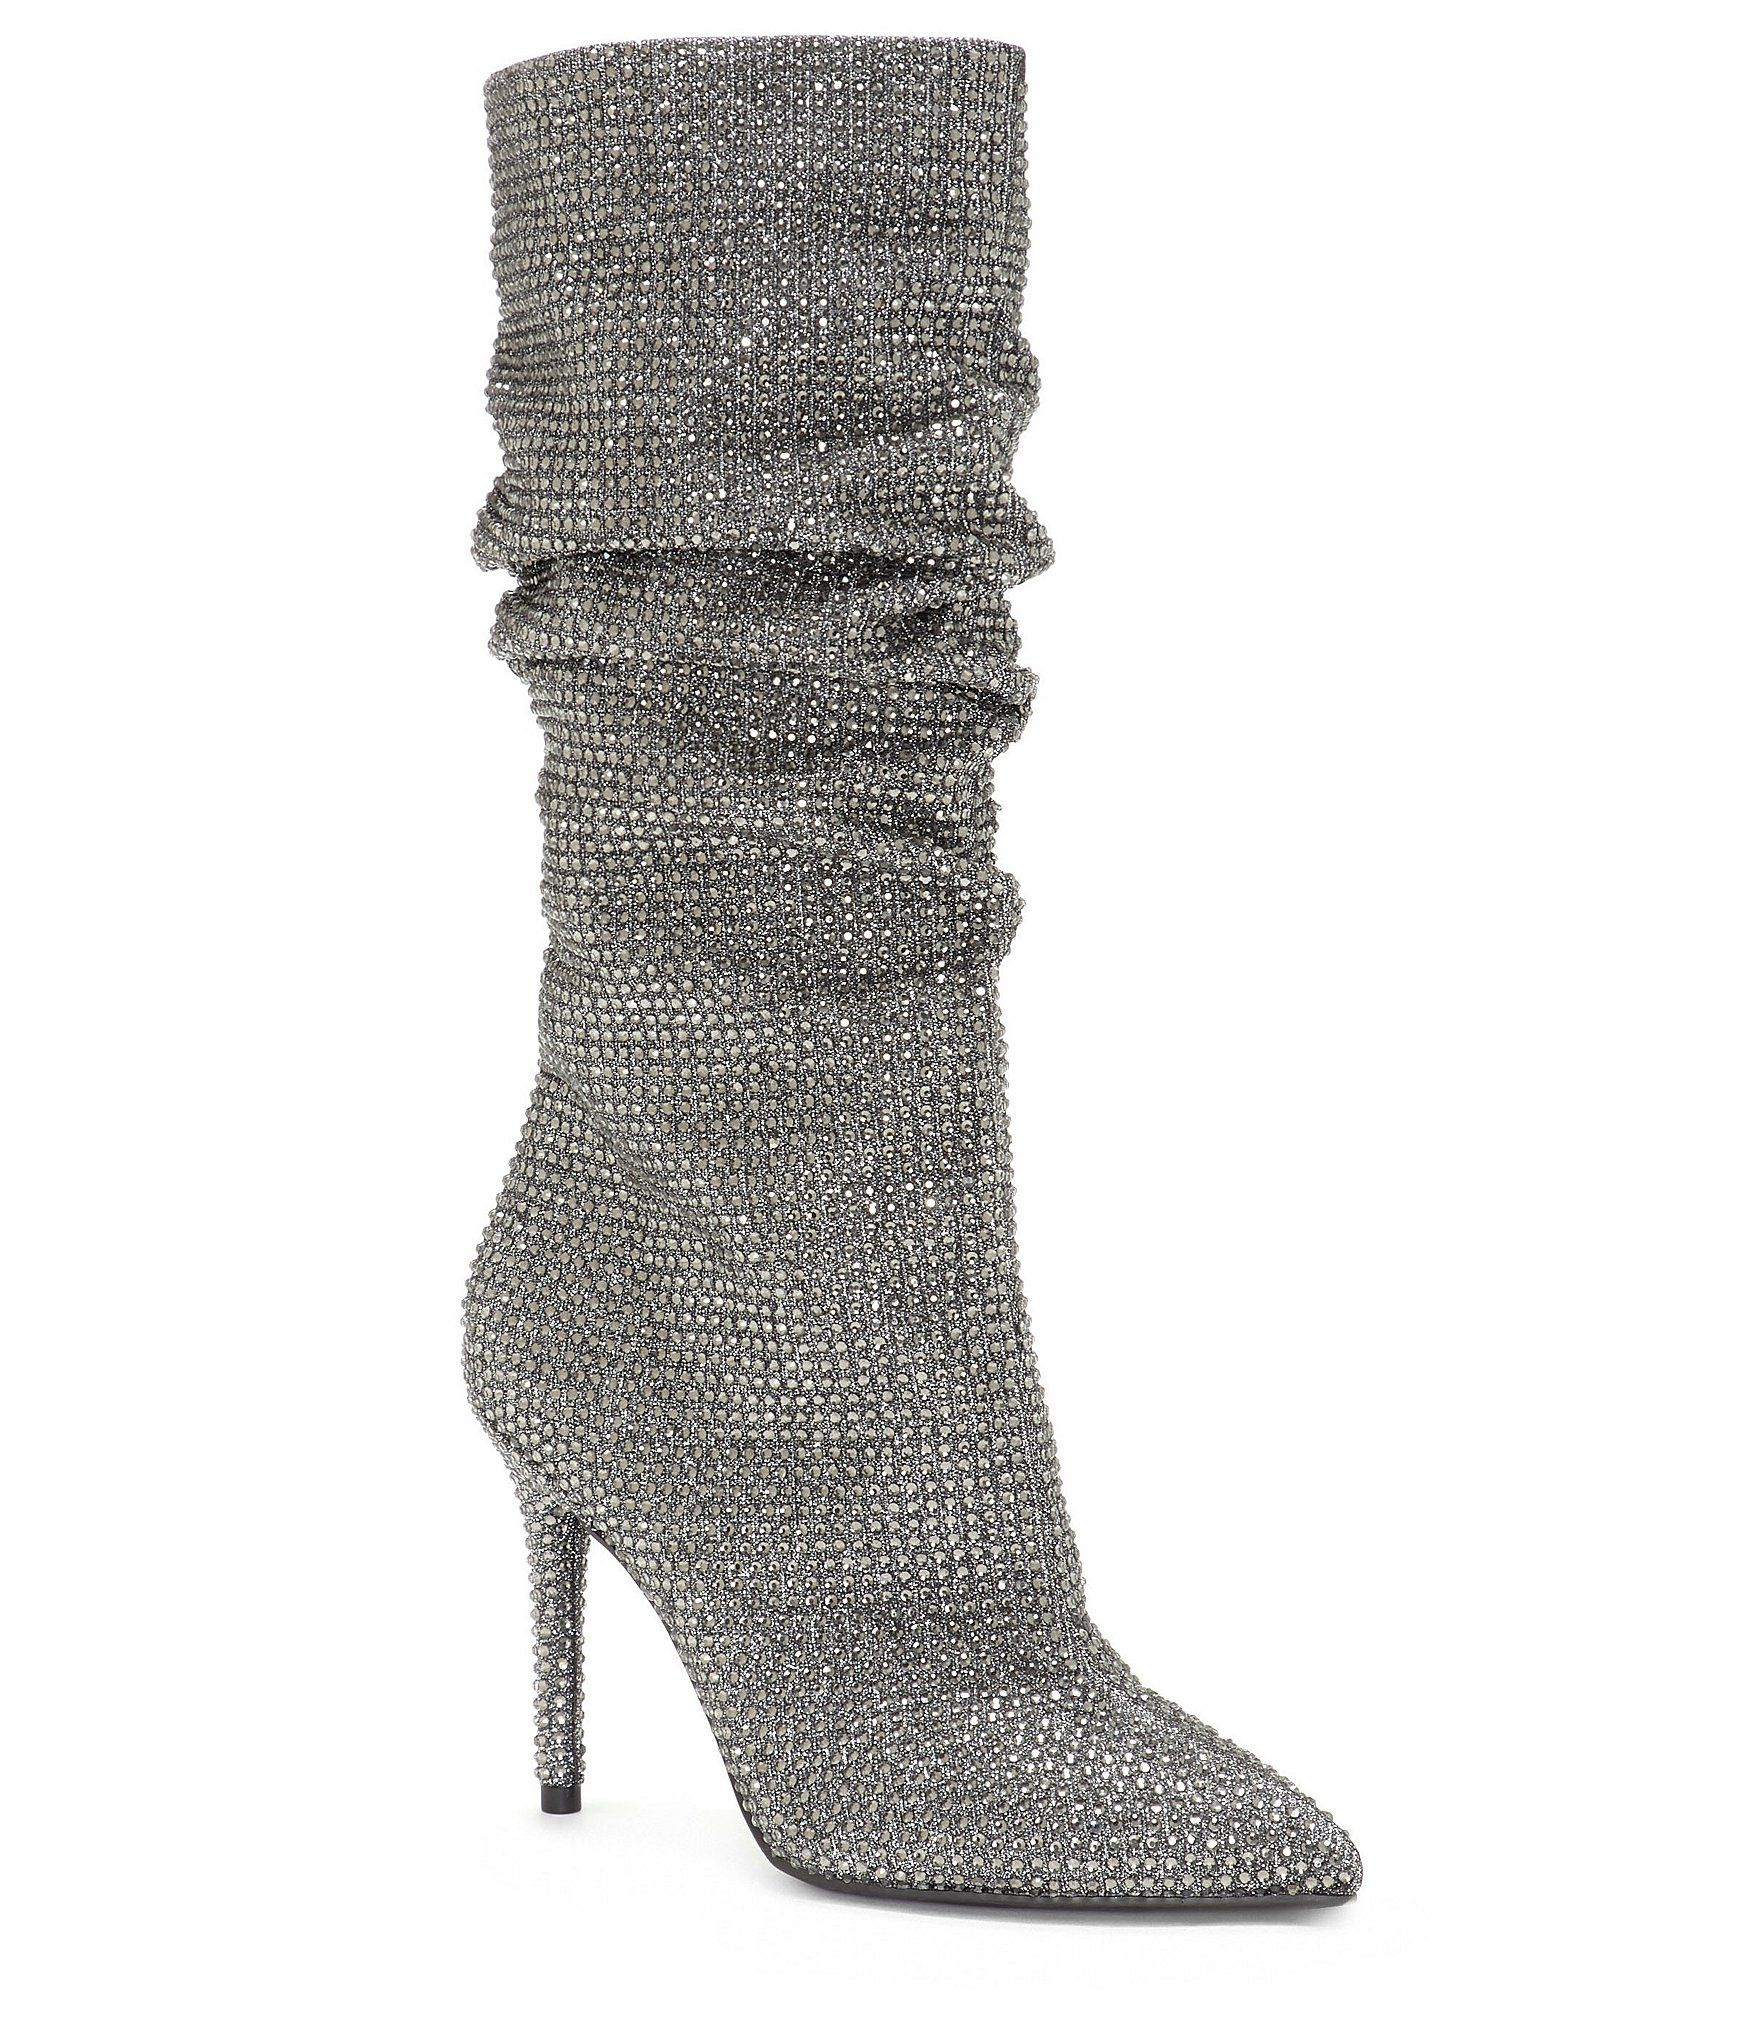 cb4c6d3c55798 Shop for Jessica Simpson Layzer Rhinestone Slouch Boots at Dillards.com.  Visit Dillards.com to find clothing, accessories, shoes, cosmetics & more.